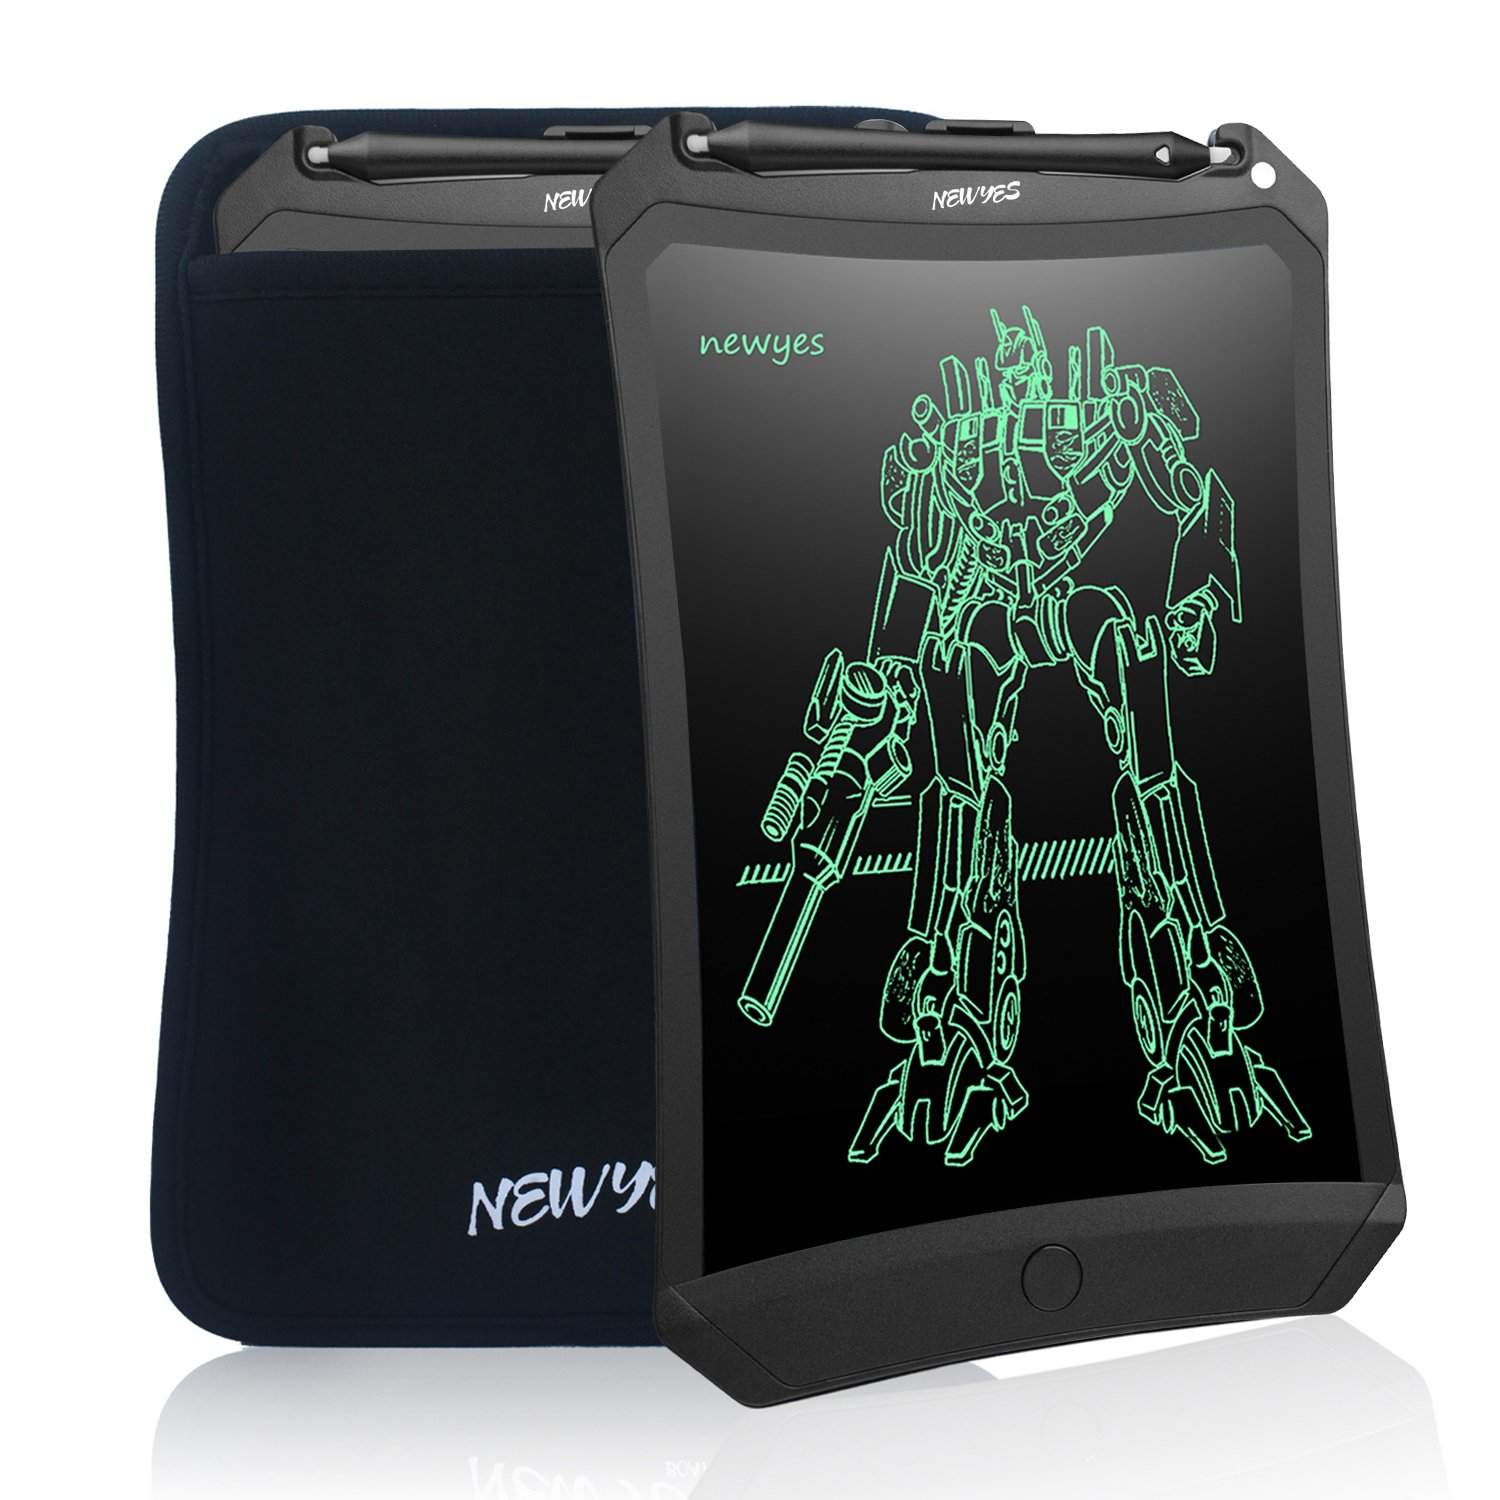 A drawing tablet in color black.